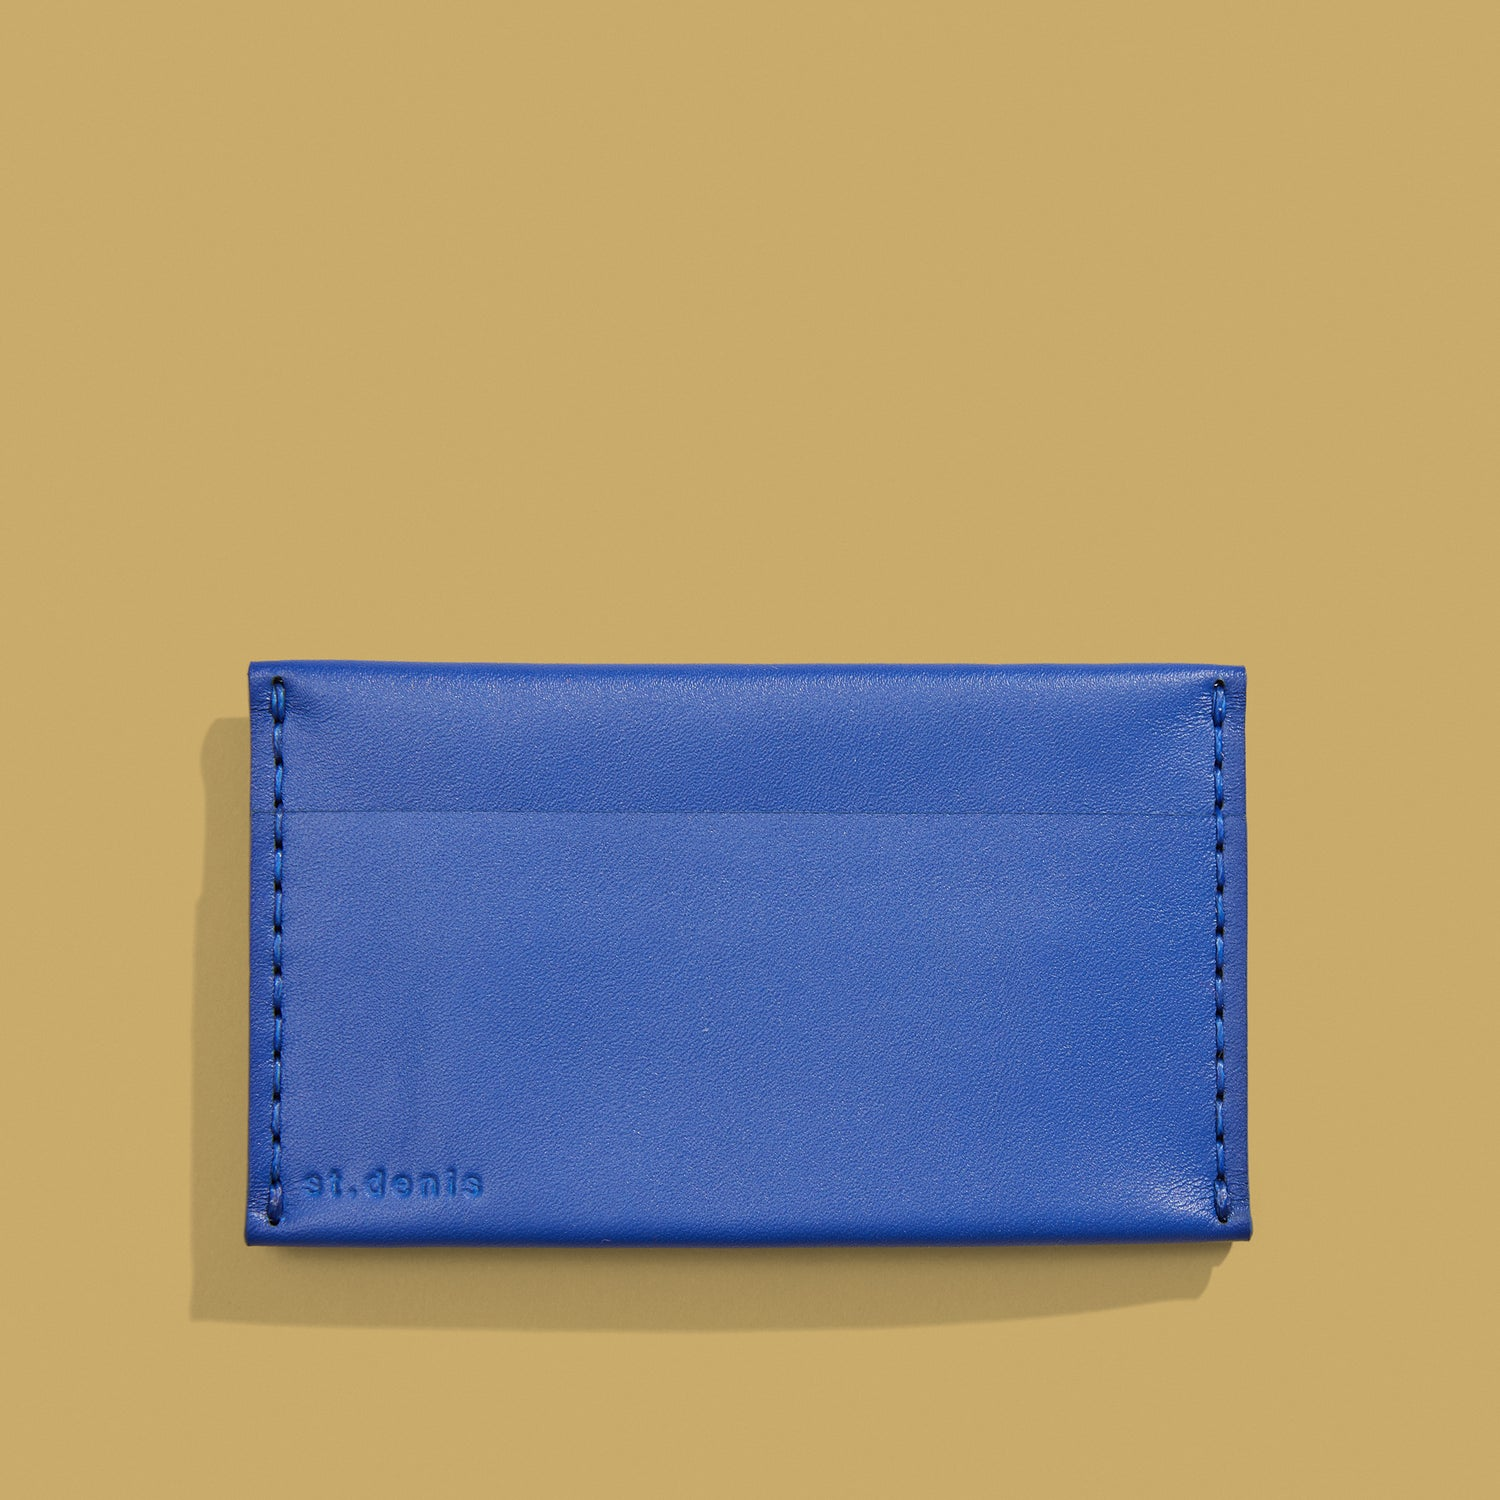 Sold out<br>Porte-cartes triple Couleur bleu